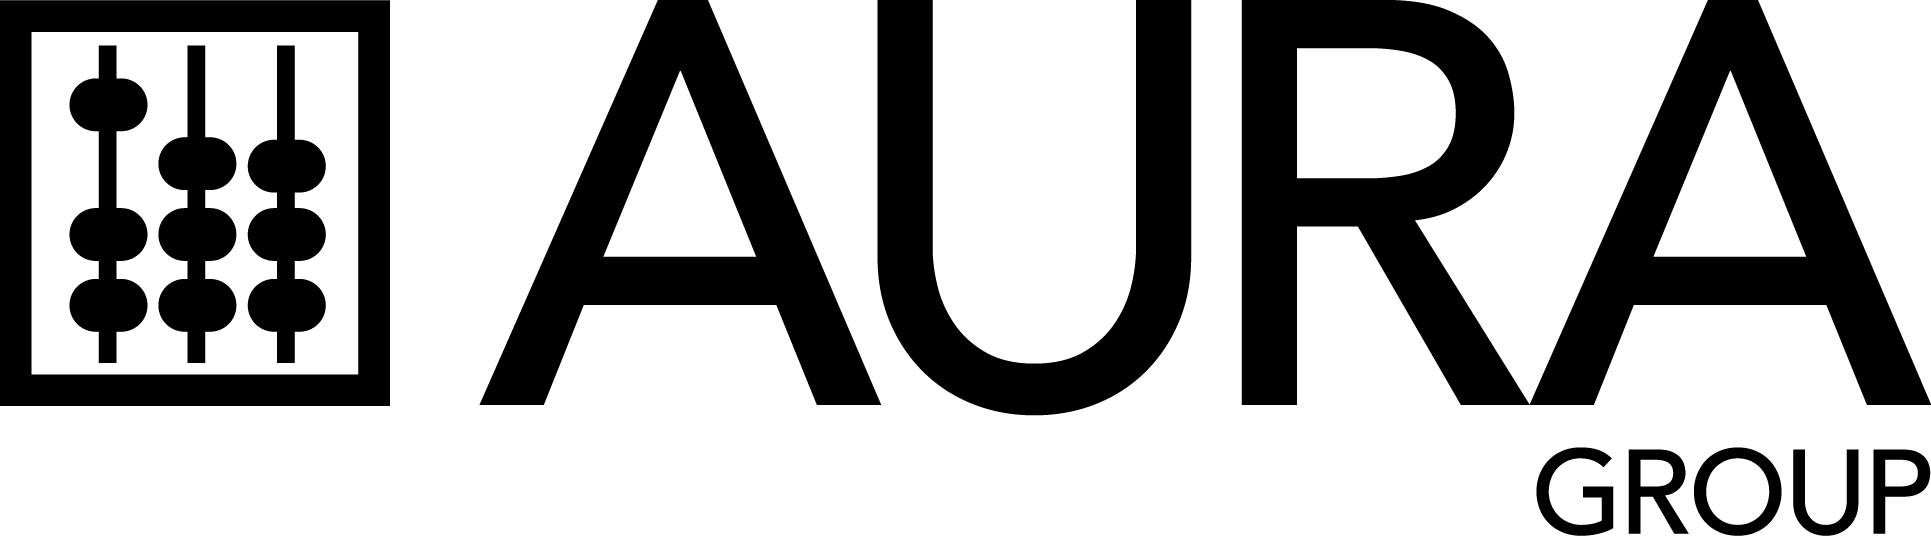 Aura Group Logo_Black.png